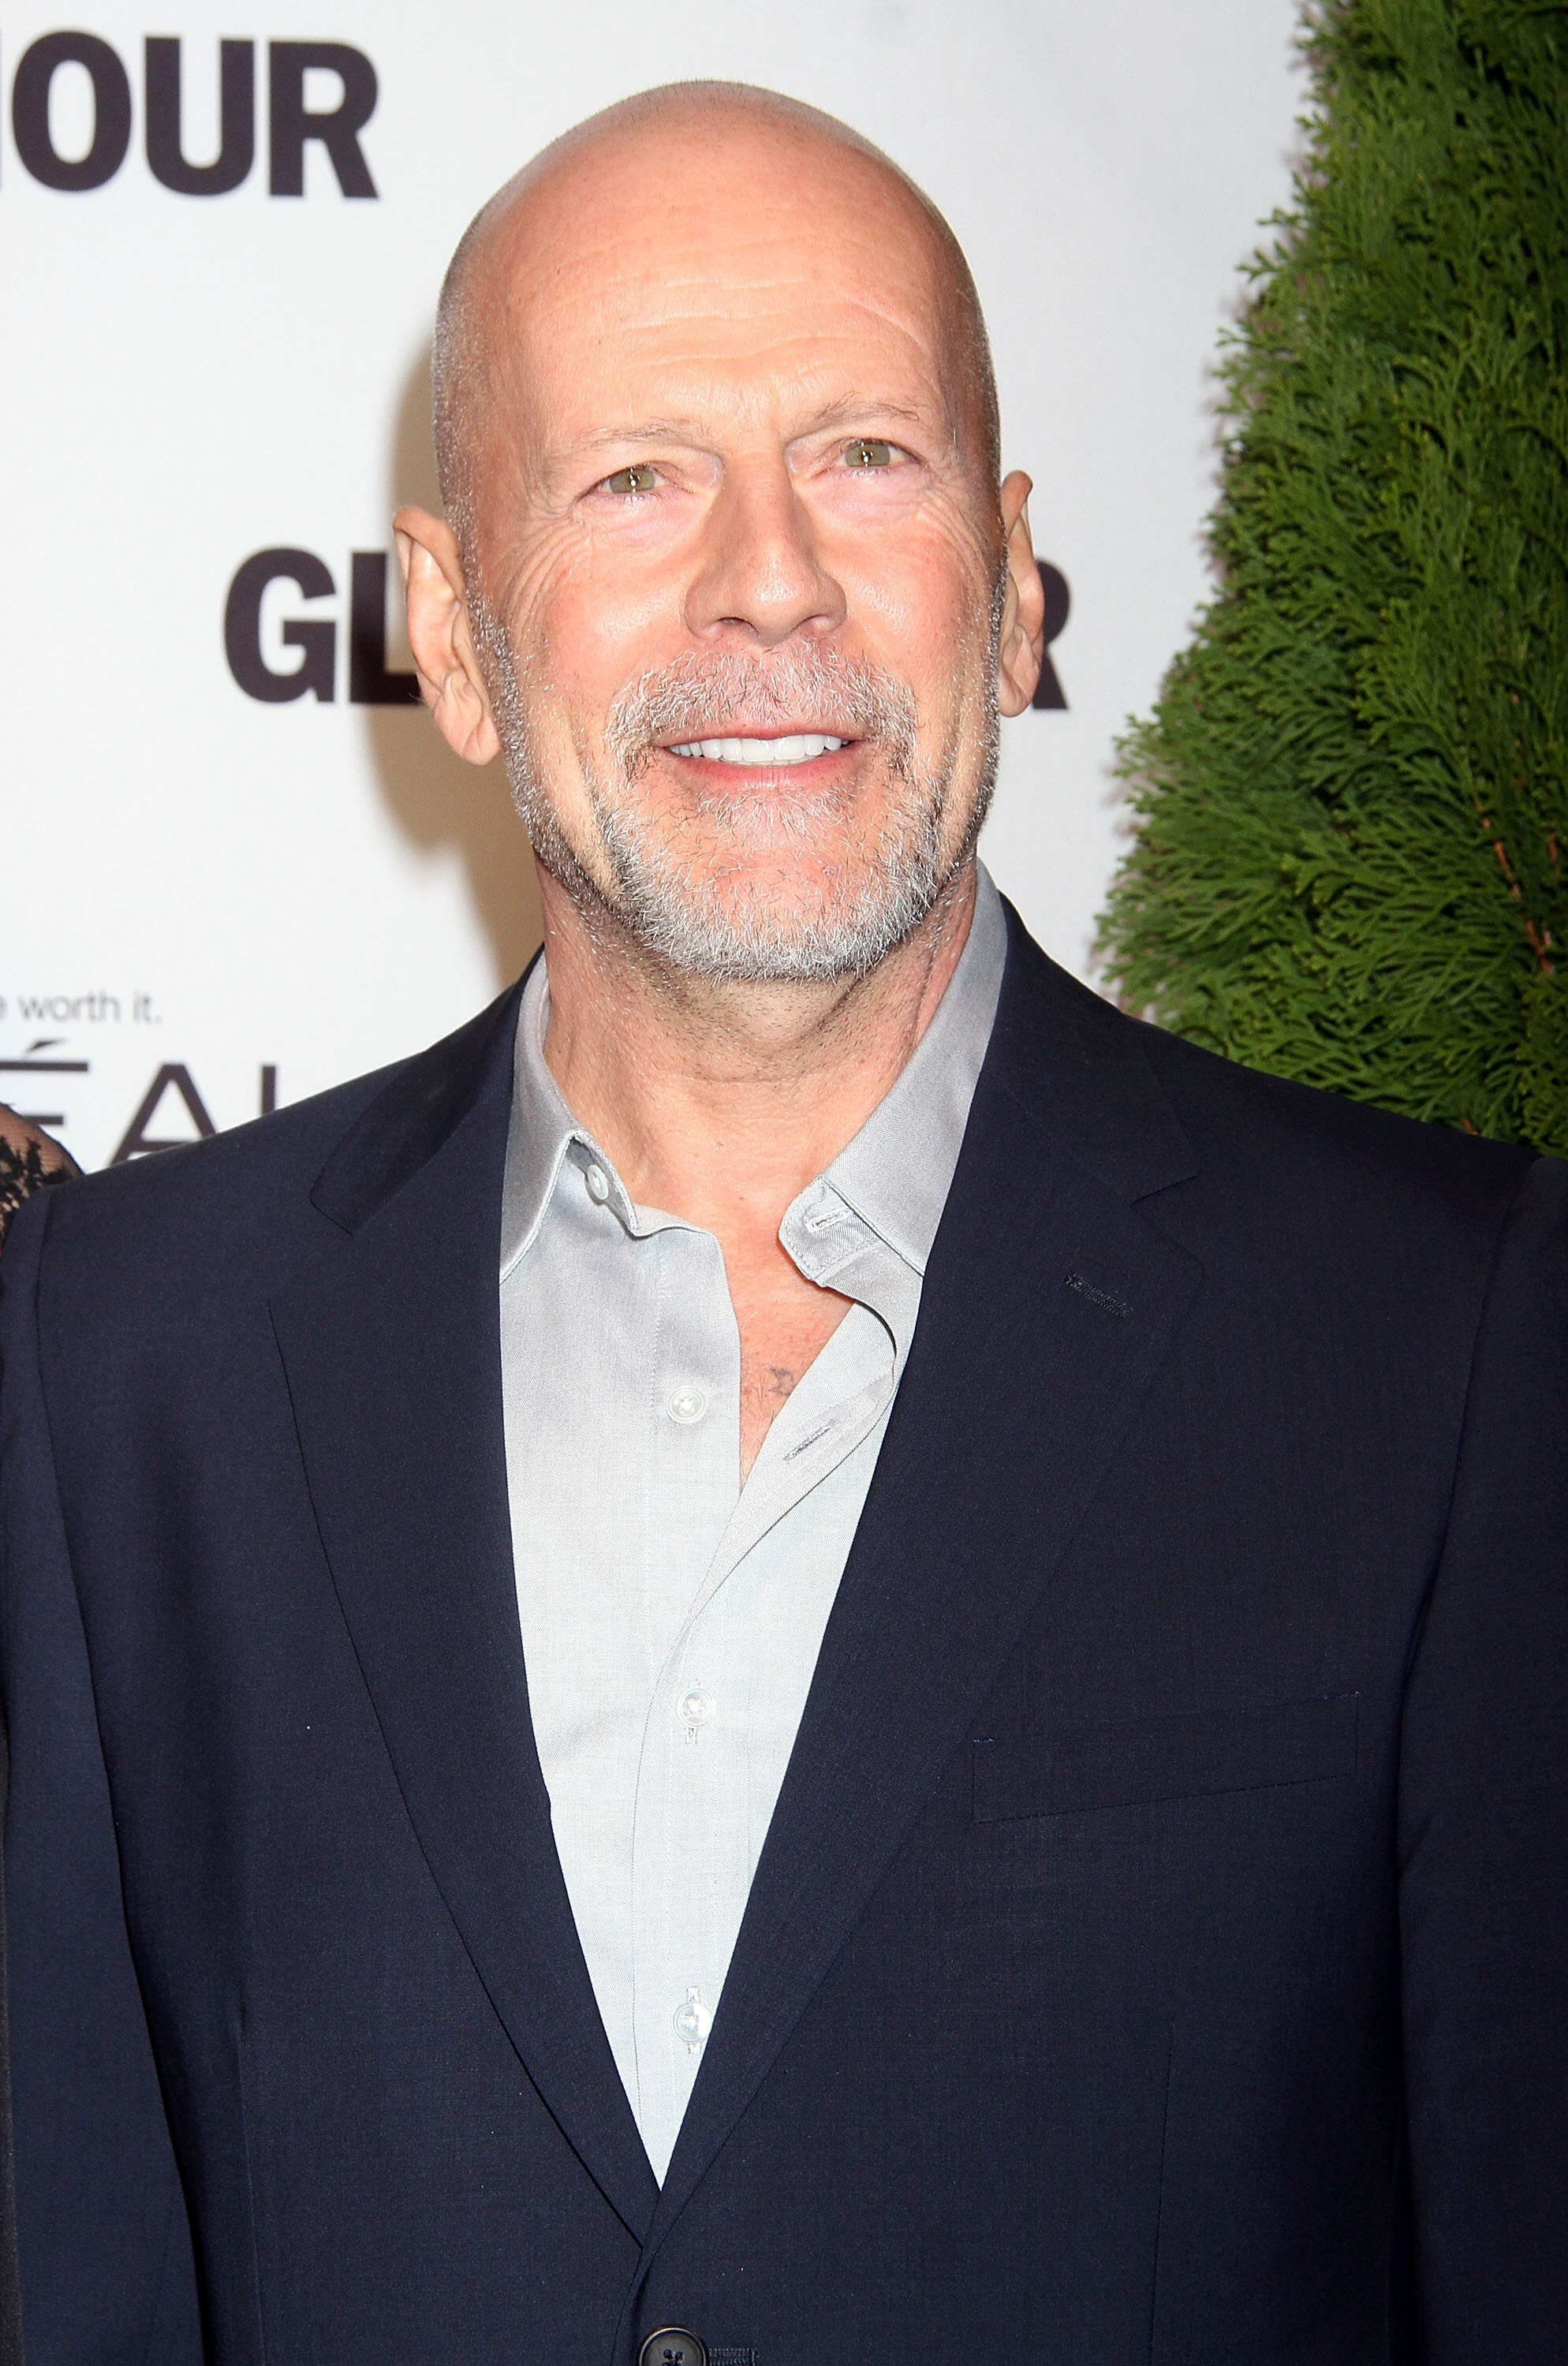 How tall is Bruce Willis?